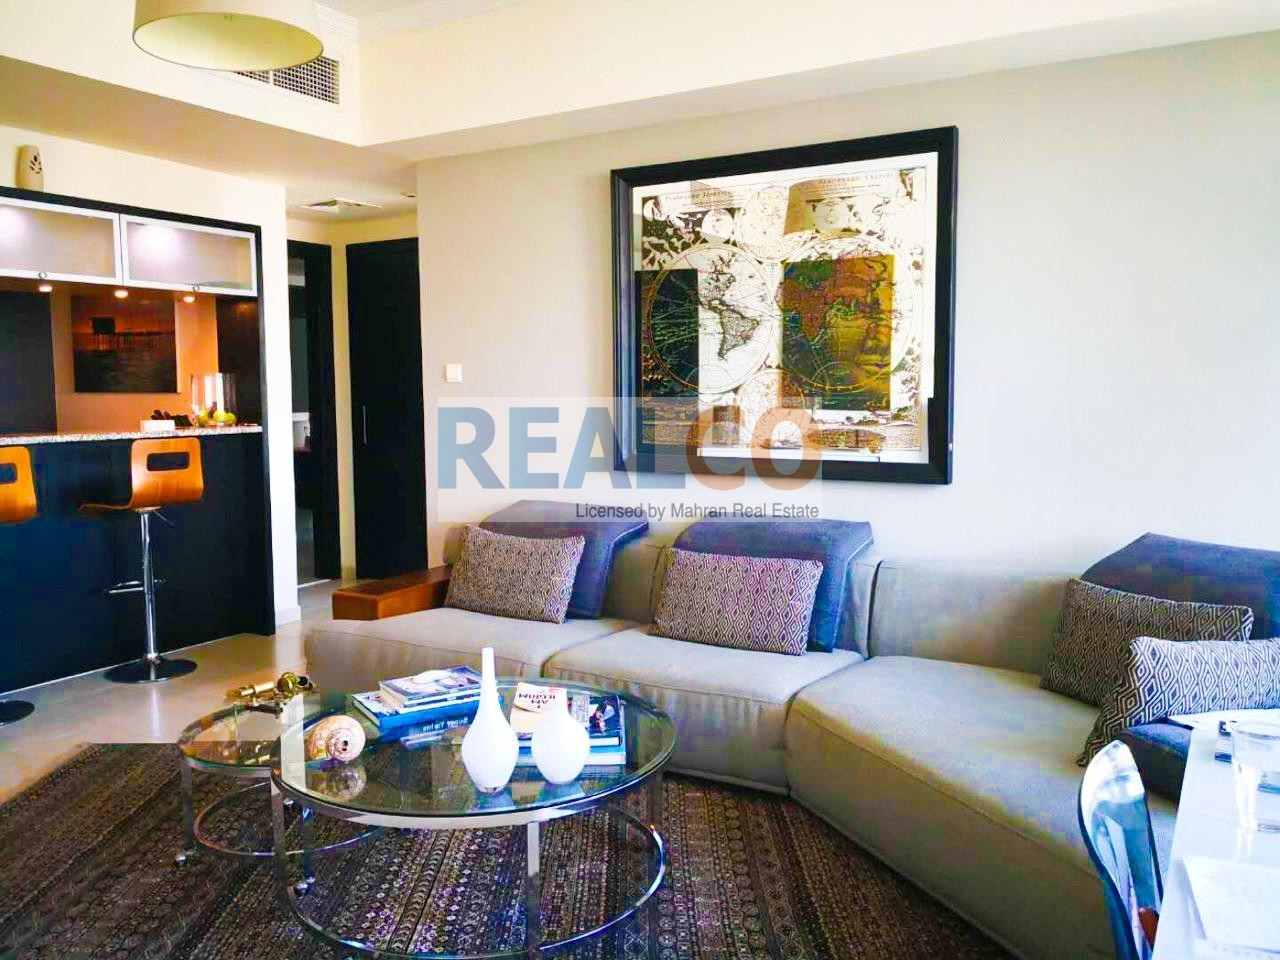 | FULLY FURNISHED 1 BR APT |HIGH FLOOR| READY TO MOVE IN |